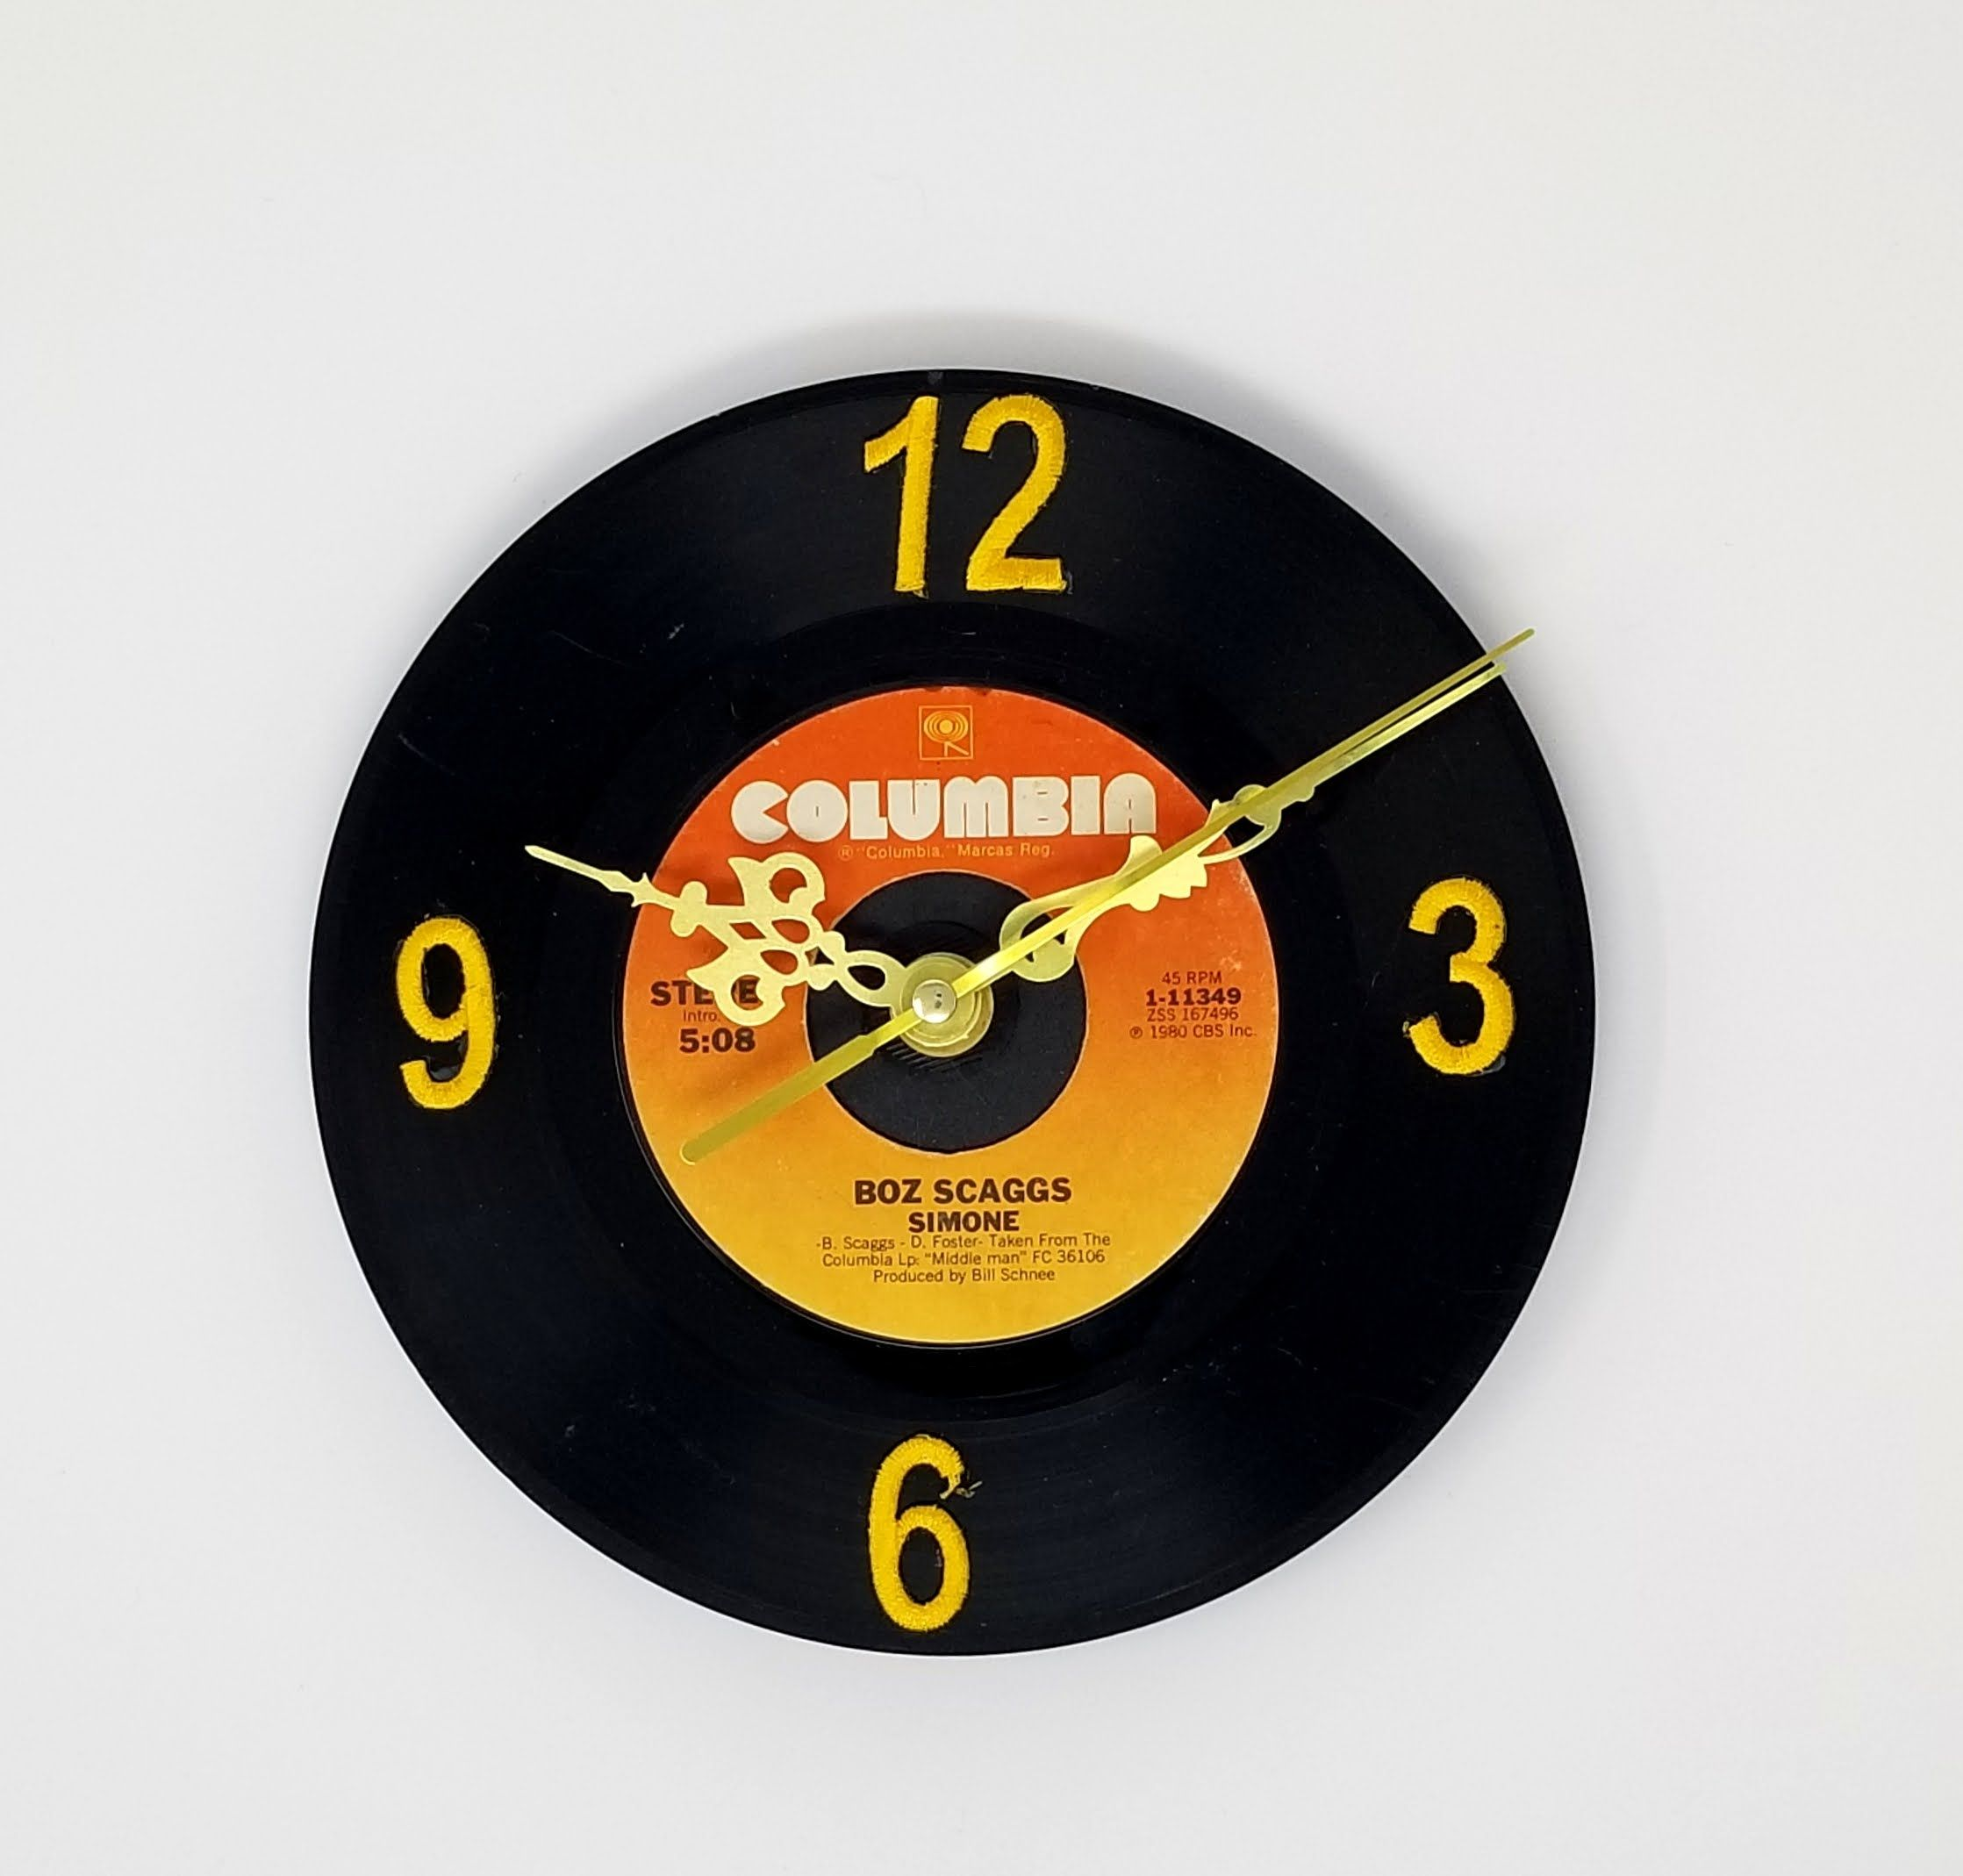 Vinyl Record Clock 45 Rpm With Images Vinyl Record Clock Unique Clocks Clock Shop